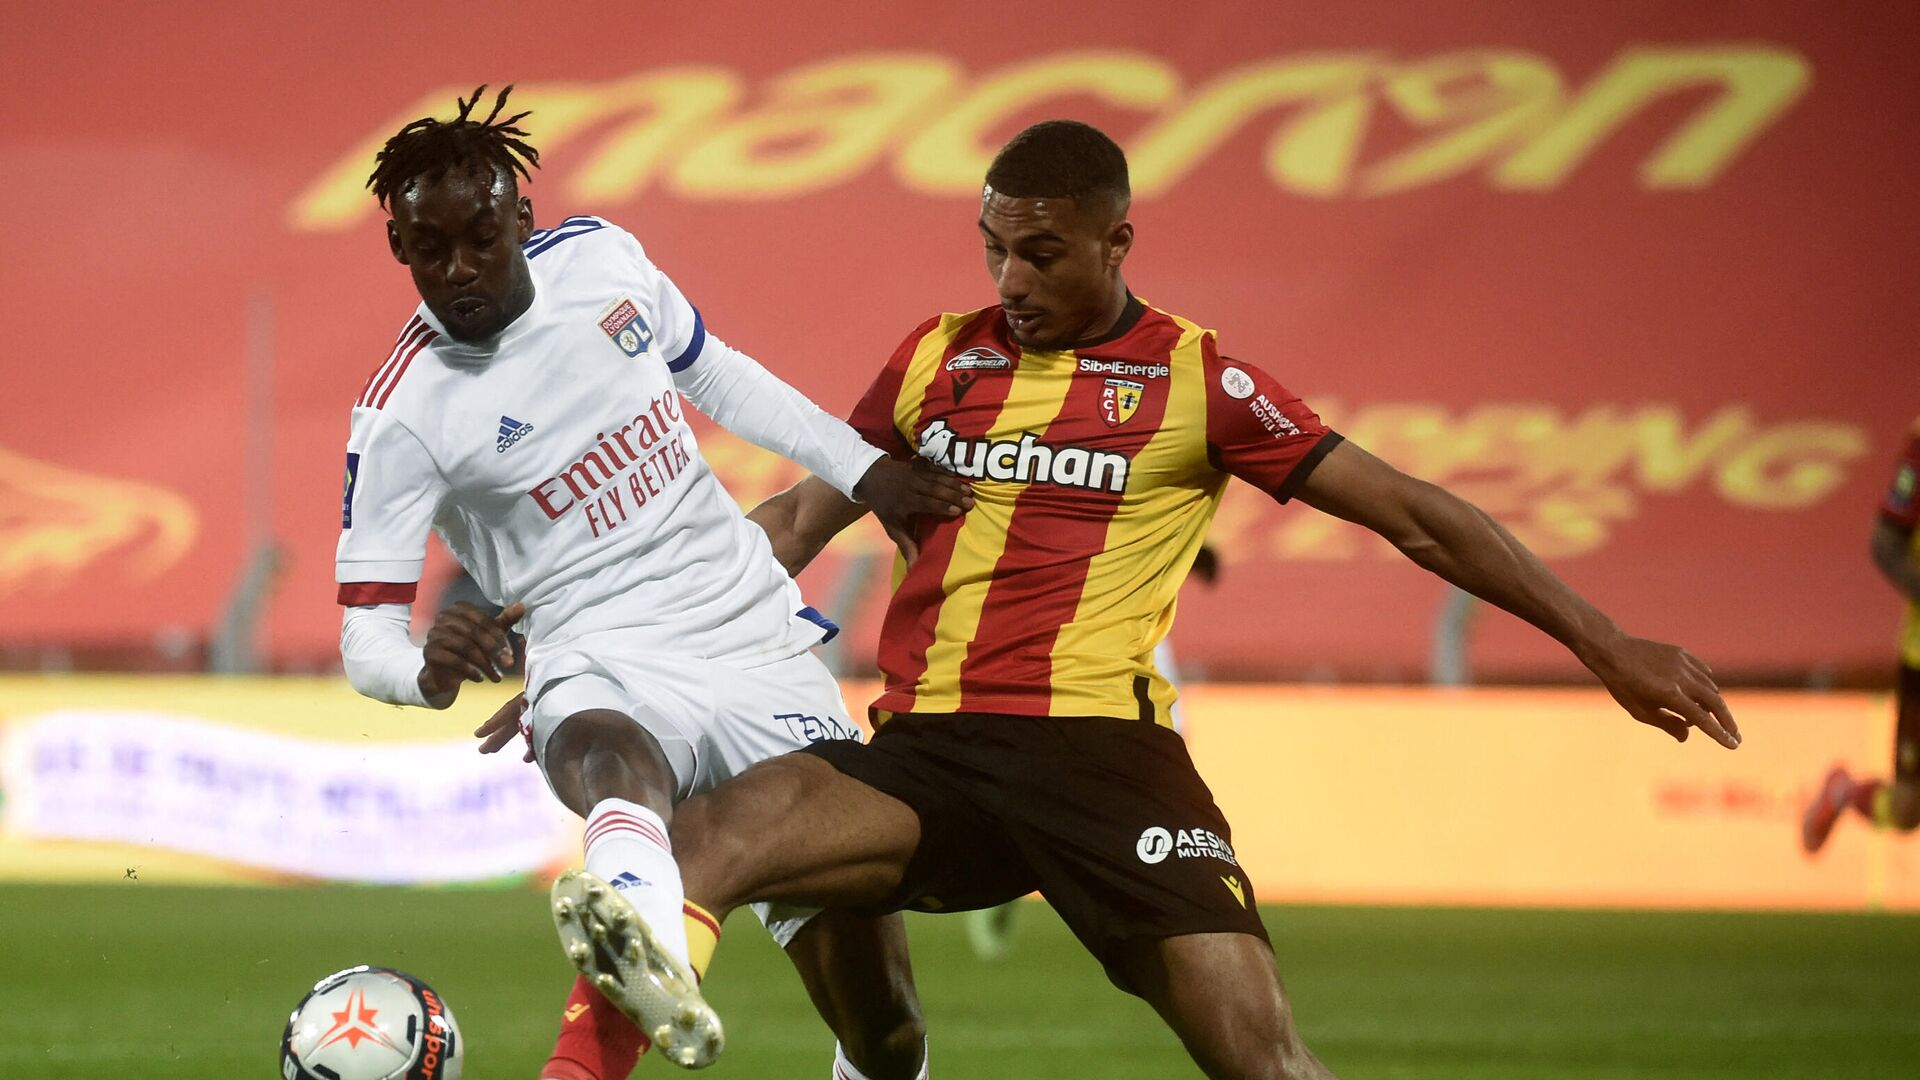 Lens' French defender Loic Bade (R) and Lyon's Cameroonian forward Karl Toko Ekambi fight for the ball during the French L1 football match between Lens and Lyon at the Bollaert Stadium in Lens, on April 3, 2021. (Photo by FRANCOIS LO PRESTI / AFP) - РИА Новости, 1920, 04.04.2021